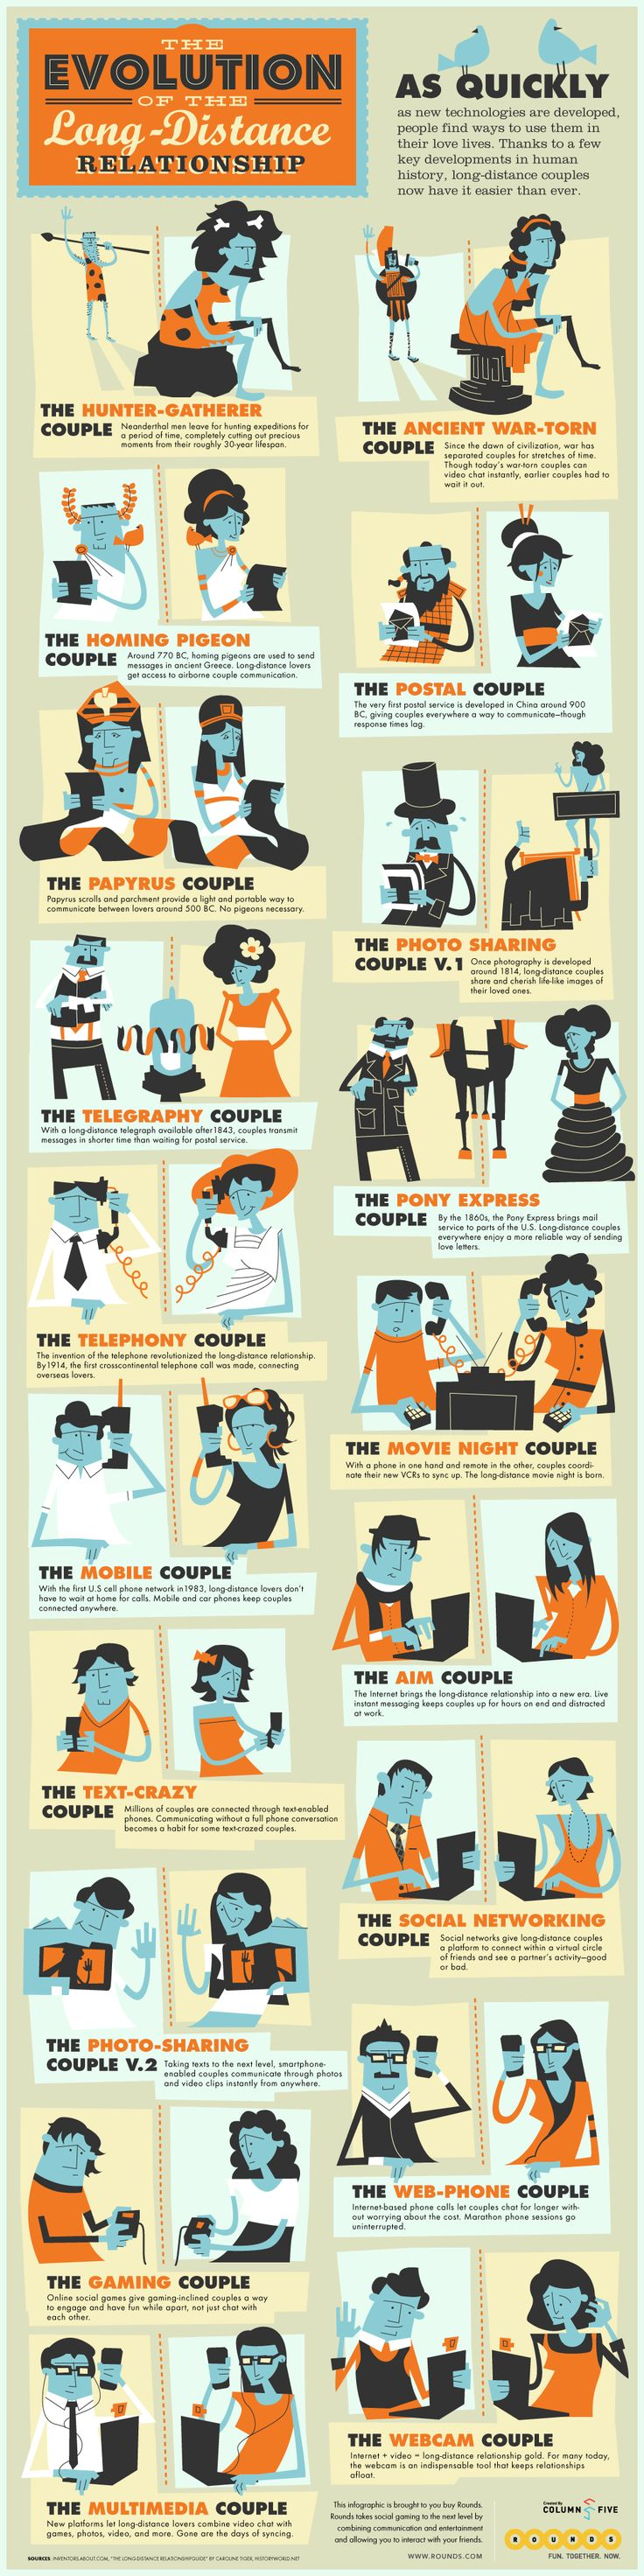 The Evolution of Long Distance Relationships [INFOGRAPHIC]: Longdistance, Stuff, Relationships Infographic, Long Distance Relationships, Couple, Infographics, Evolution, Relationship Infographic